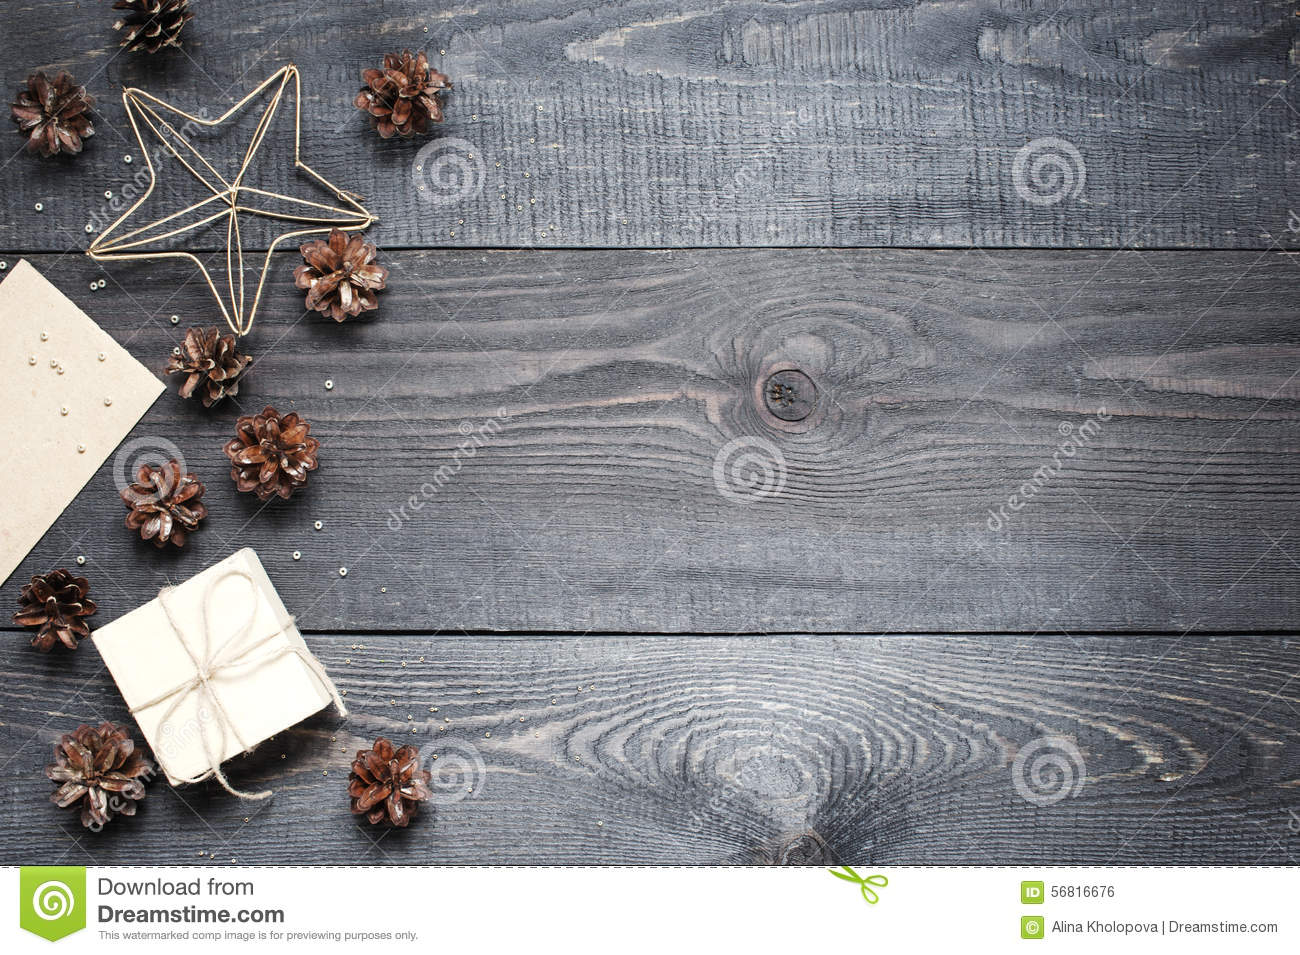 Gift, card, pine cones and cinnamonin on the dark wooden texture